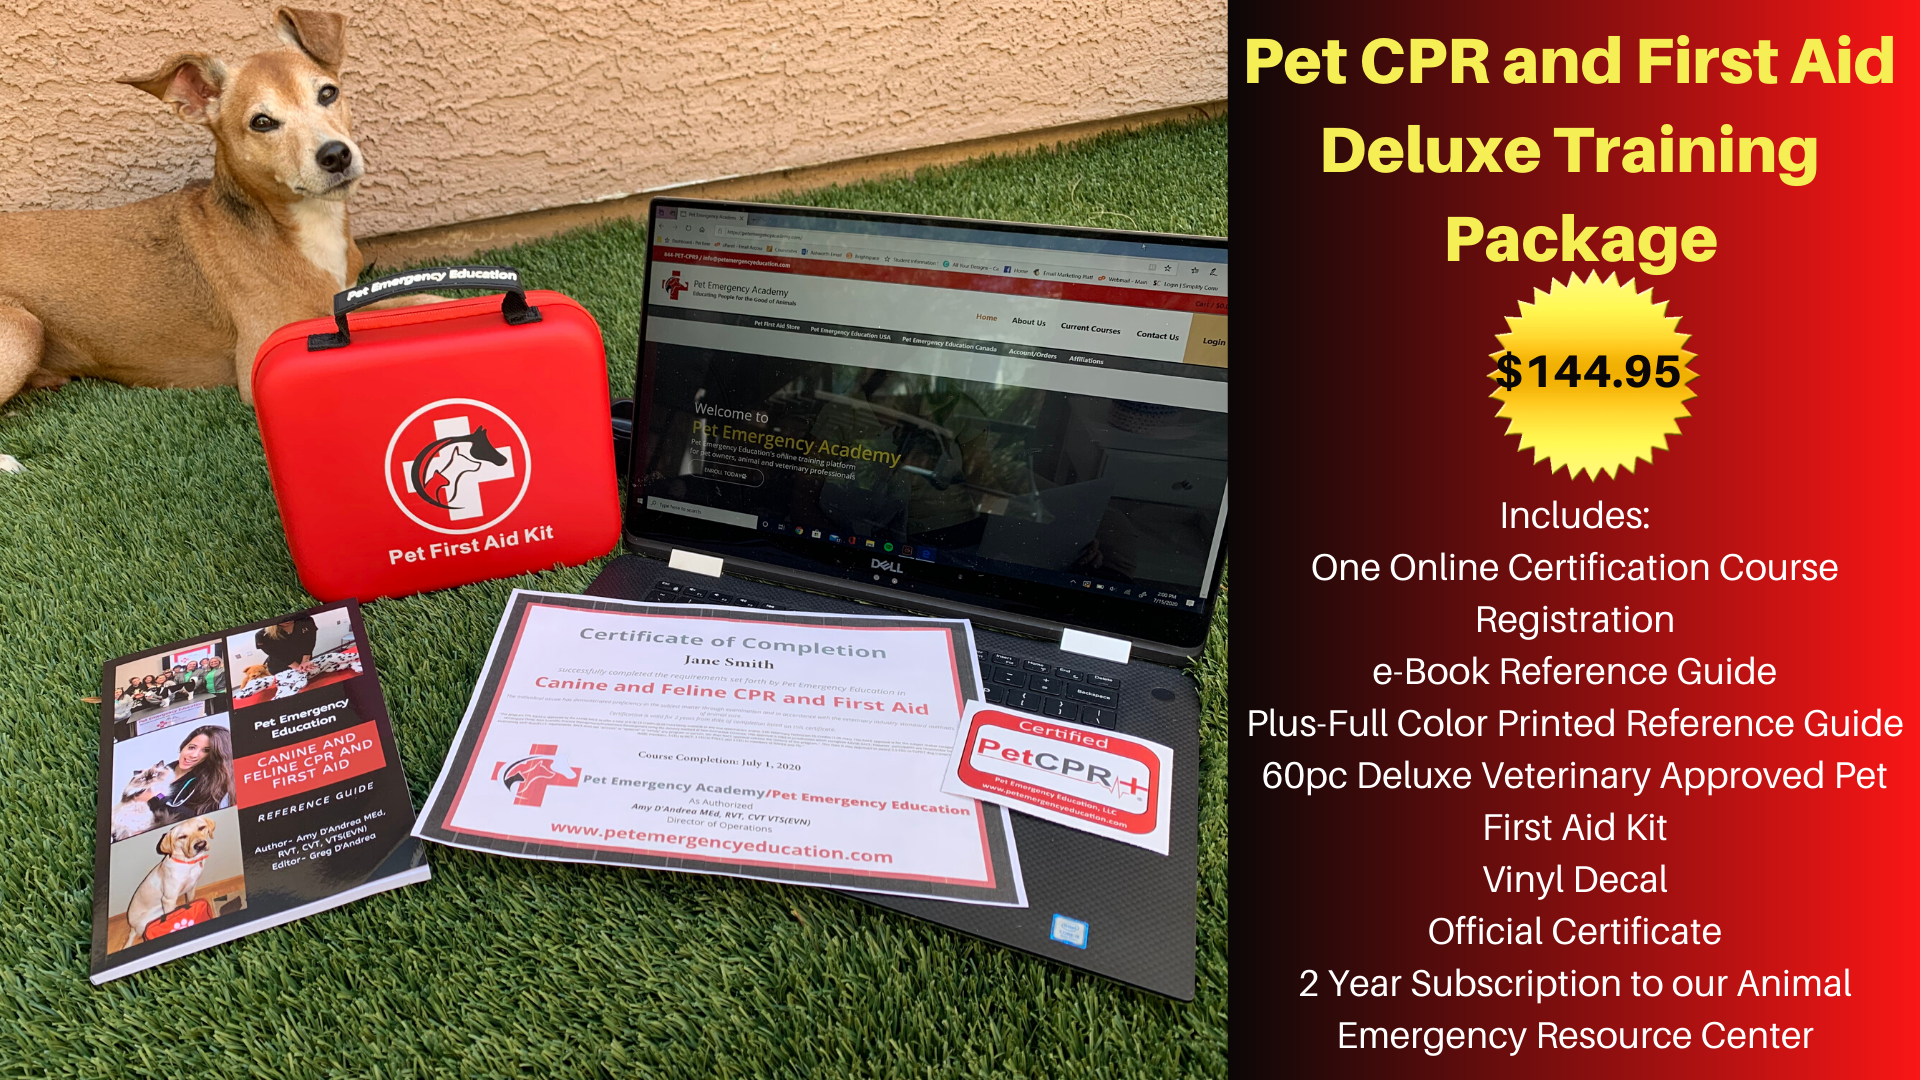 Business - STEM | Pet Emergency Education - Animal CPR, First Aid and Emergency Training